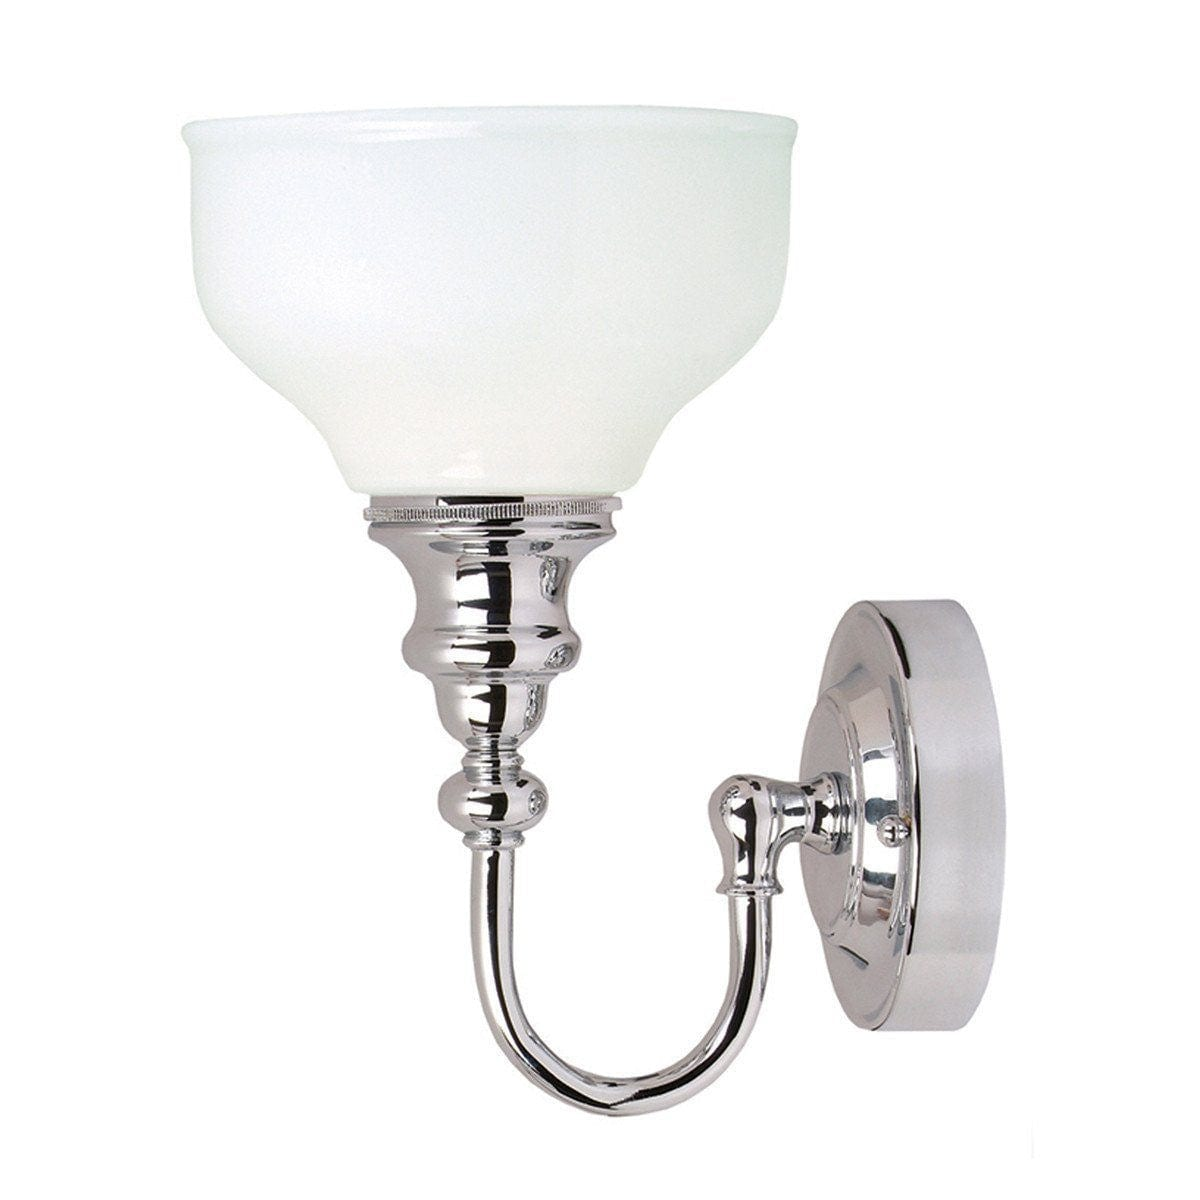 Traditional Bathroom Lights - Cheadle Polished Chrome Finish Bathroom Wall Light BATH/CD1